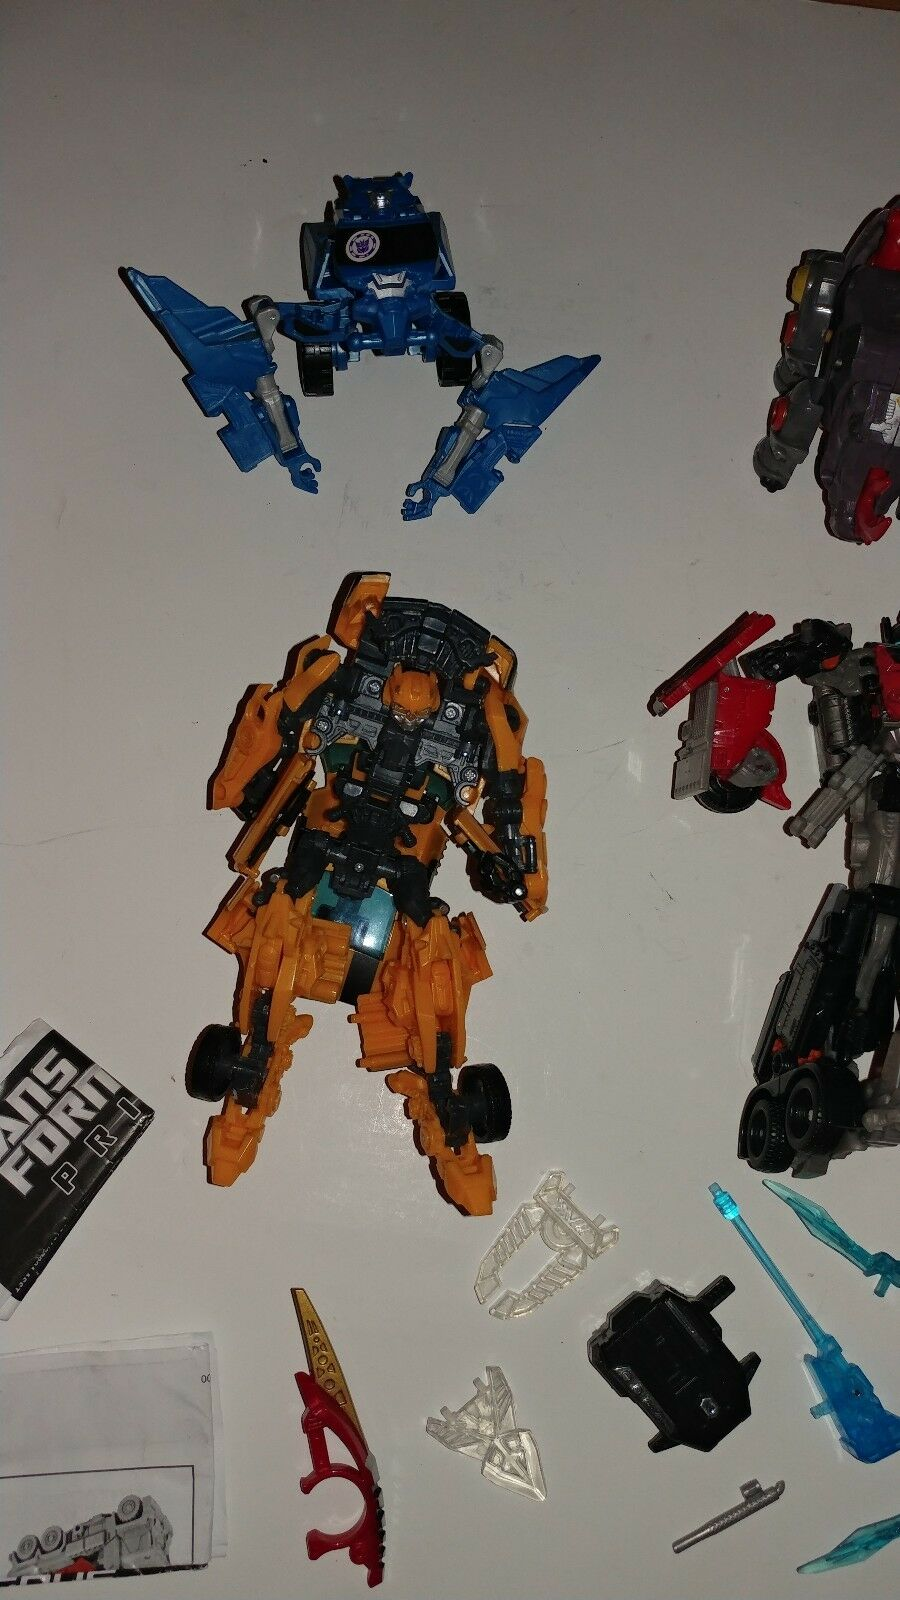 Mixed Lot of 7 Transformers Transformers Transformers Complete & Incomplete Vintage Modern + Accessories 6d2028